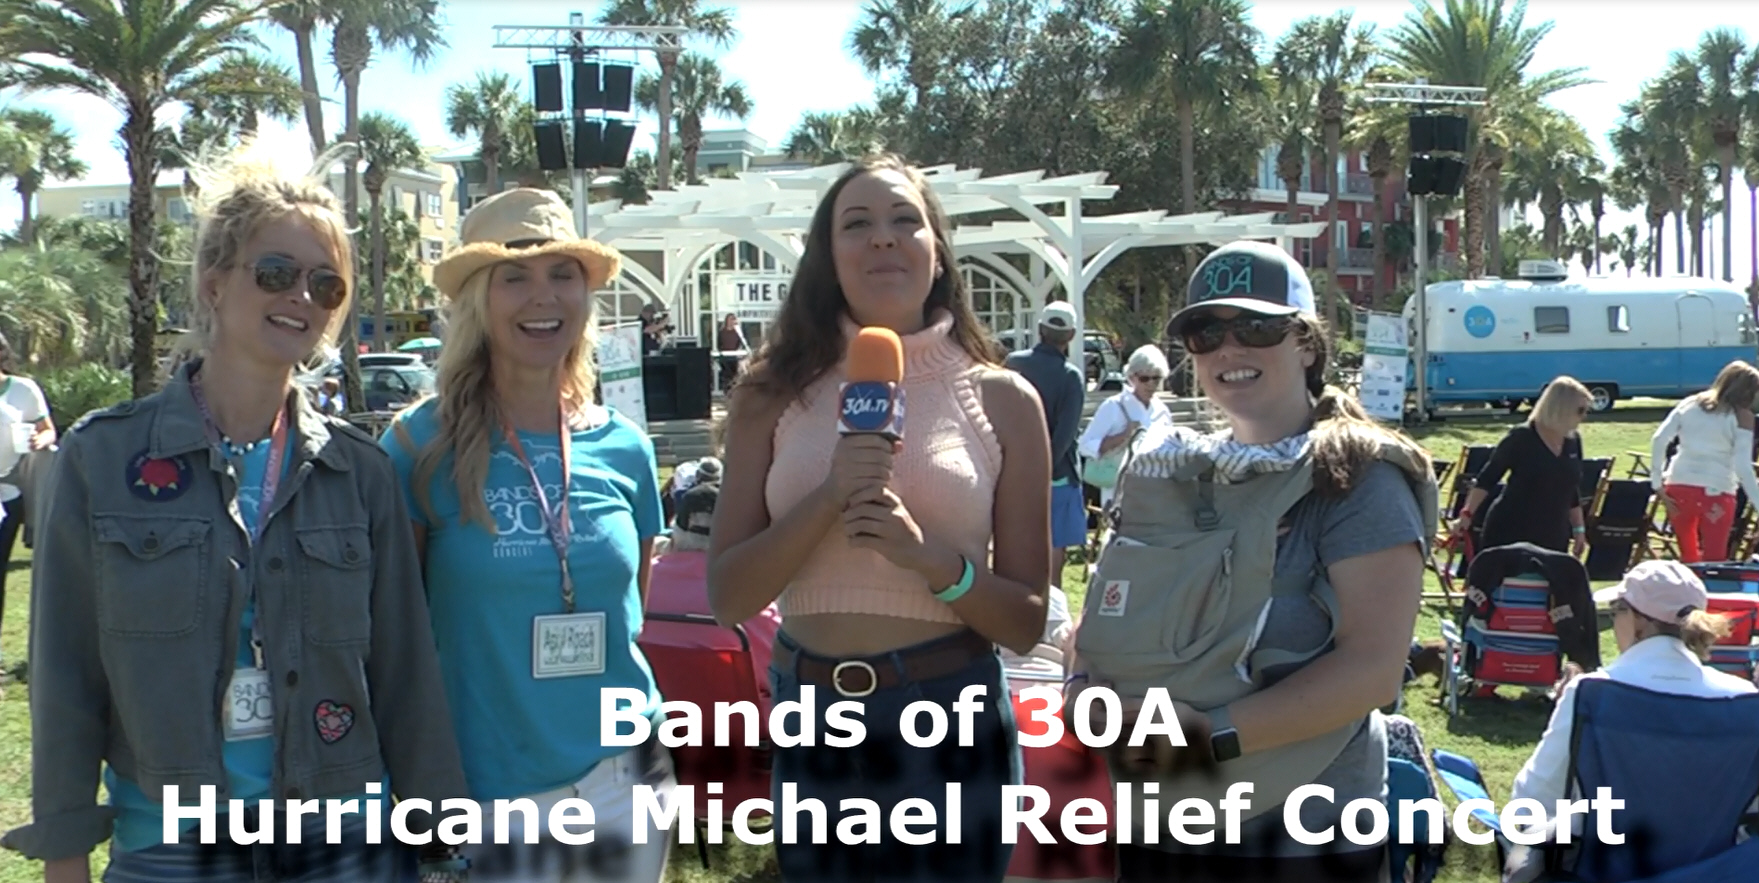 Bands of 30A Hurricane Michael Relief Concert at Gulf Place Ampitheater